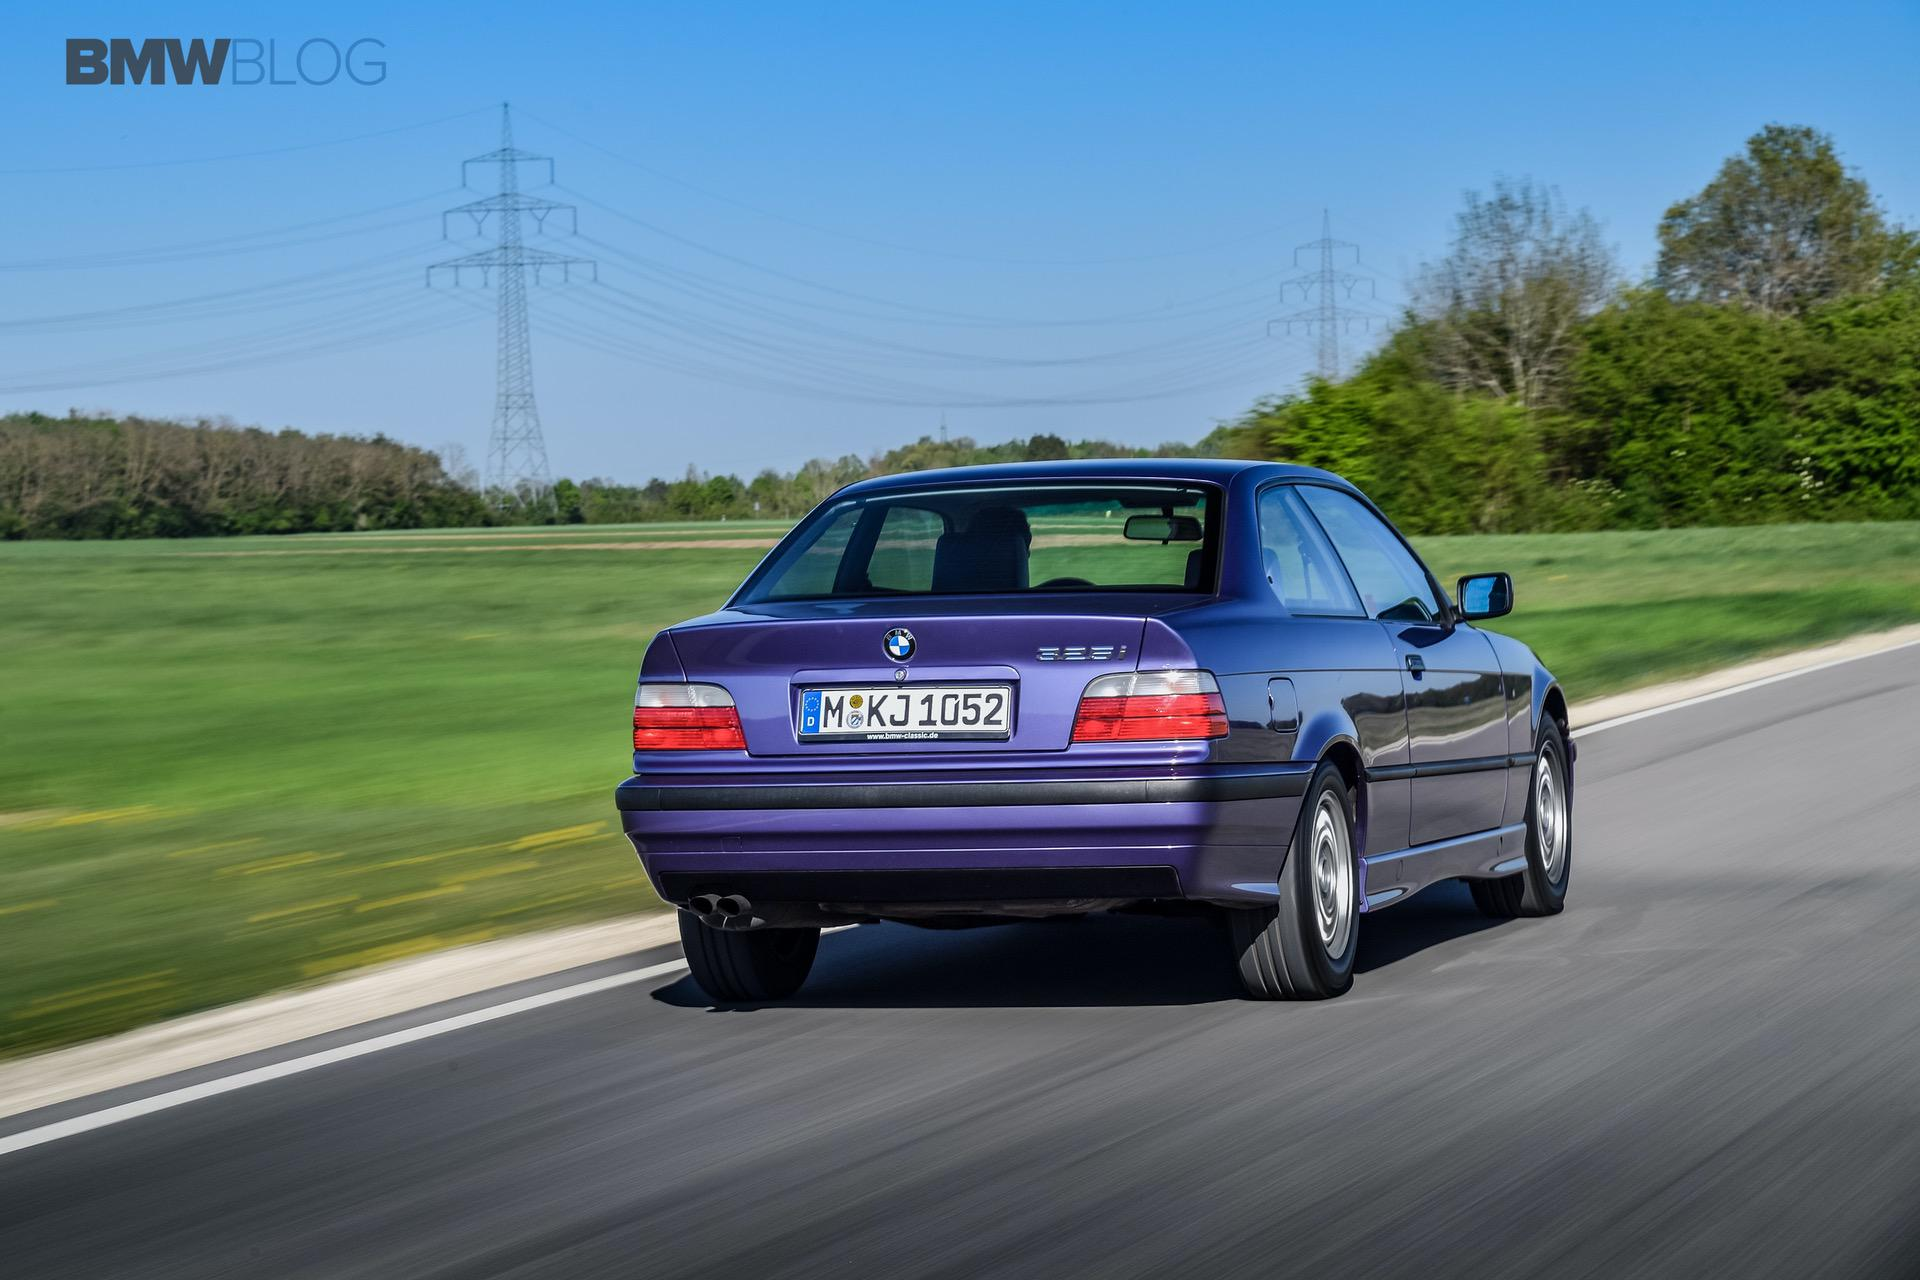 Test Drive E36 Bmw 325i In Individual Violet Metallic